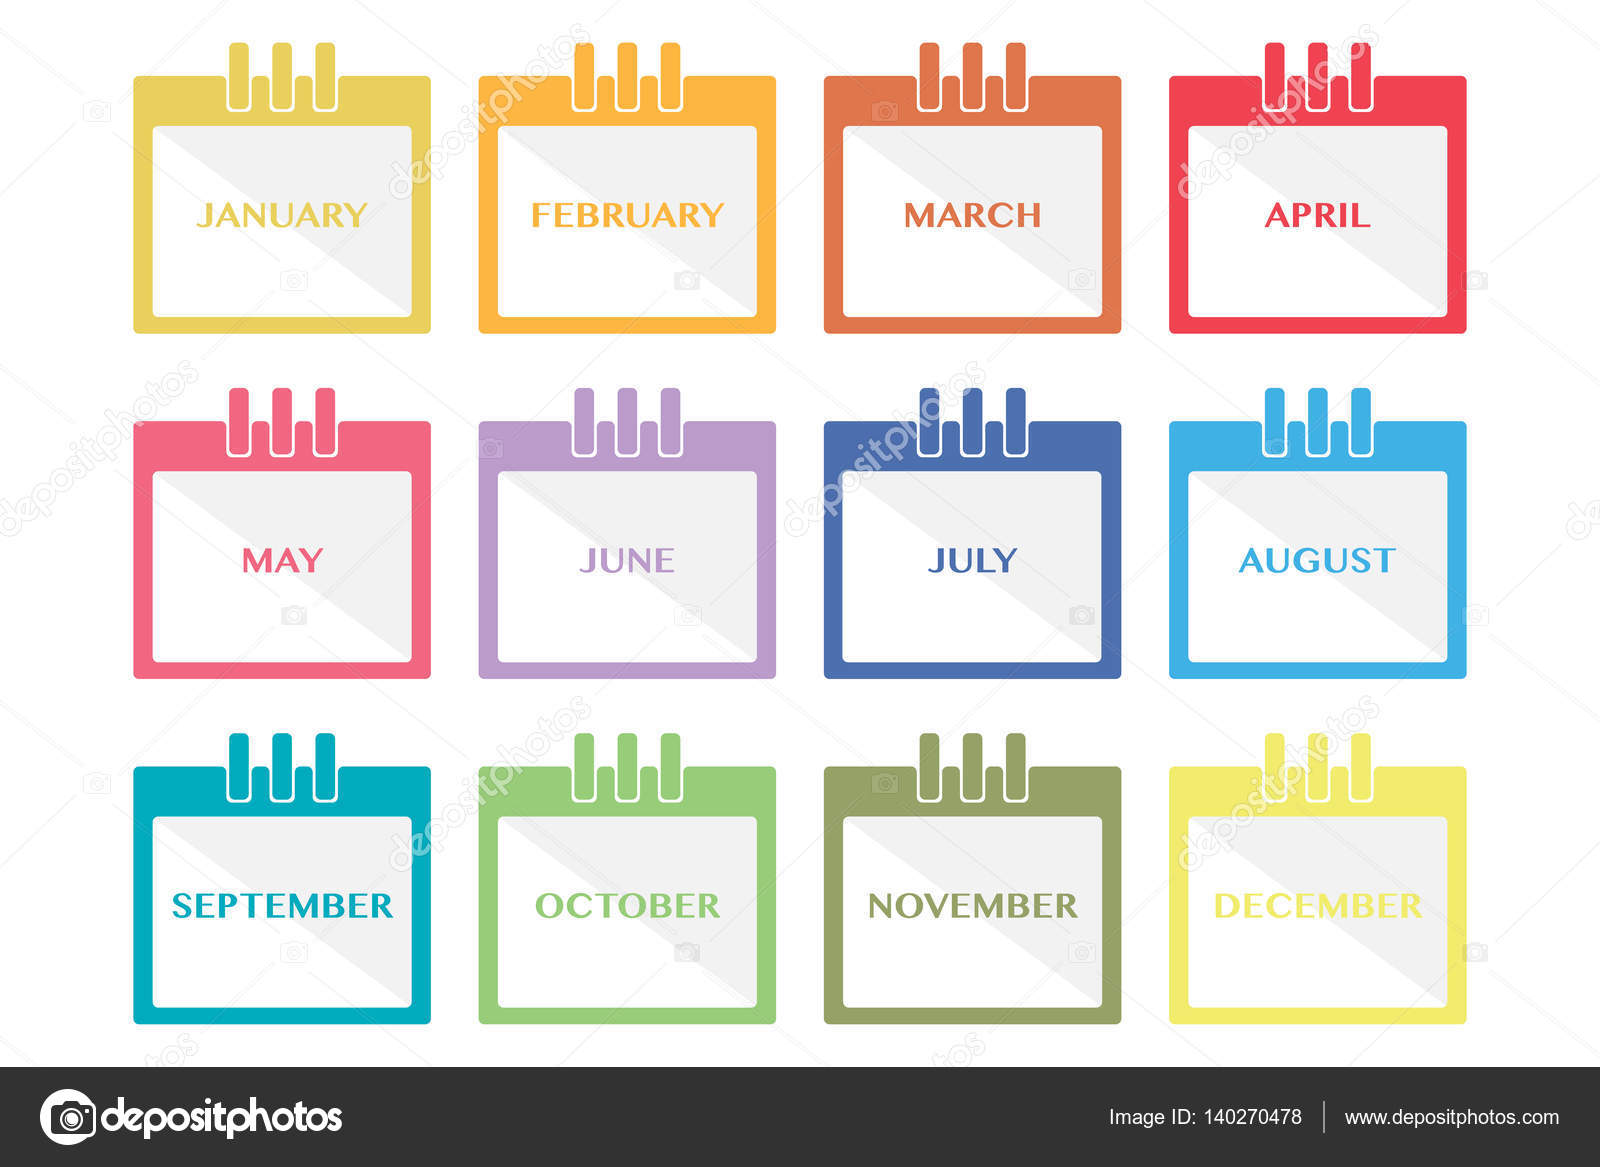 Calendar Monthly Meaning : Months calendar flat icon — stock vector nonchai